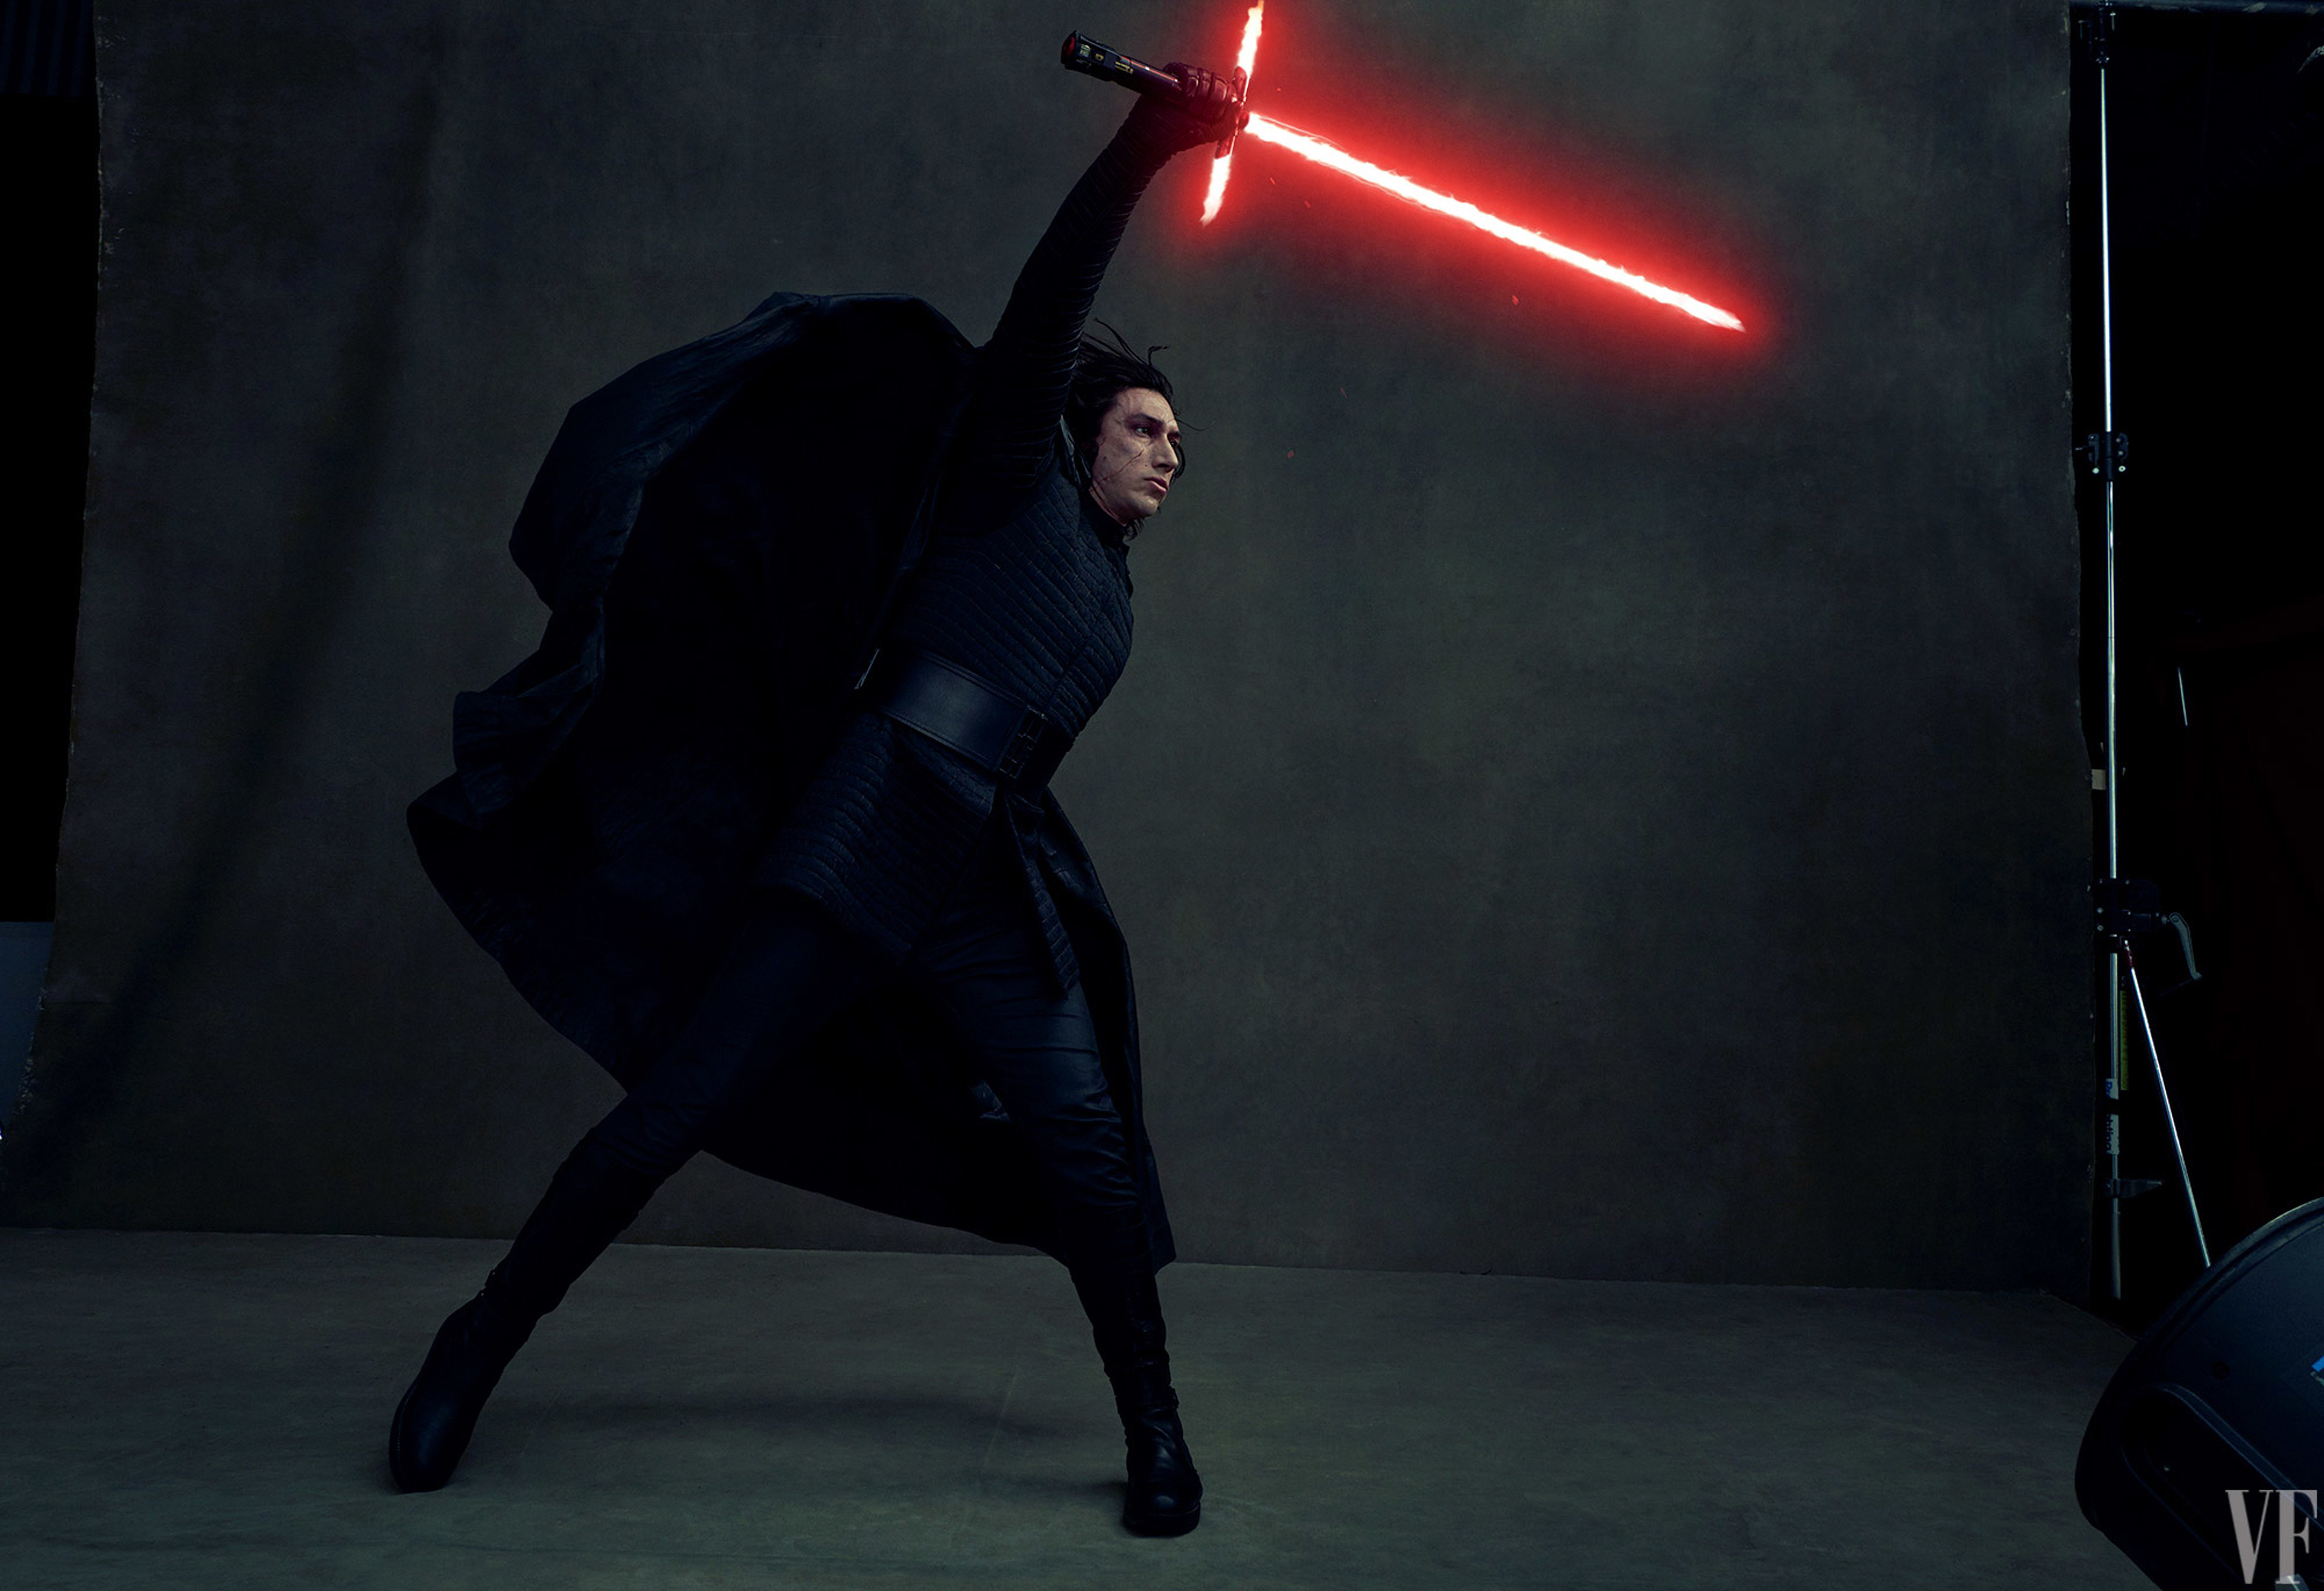 2048x1152 Kylo Ren In Star Wars The Last Jedi 4k Vanity Fair 2048x1152 Resolution Hd 4k Wallpapers Images Backgrounds Photos And Pictures